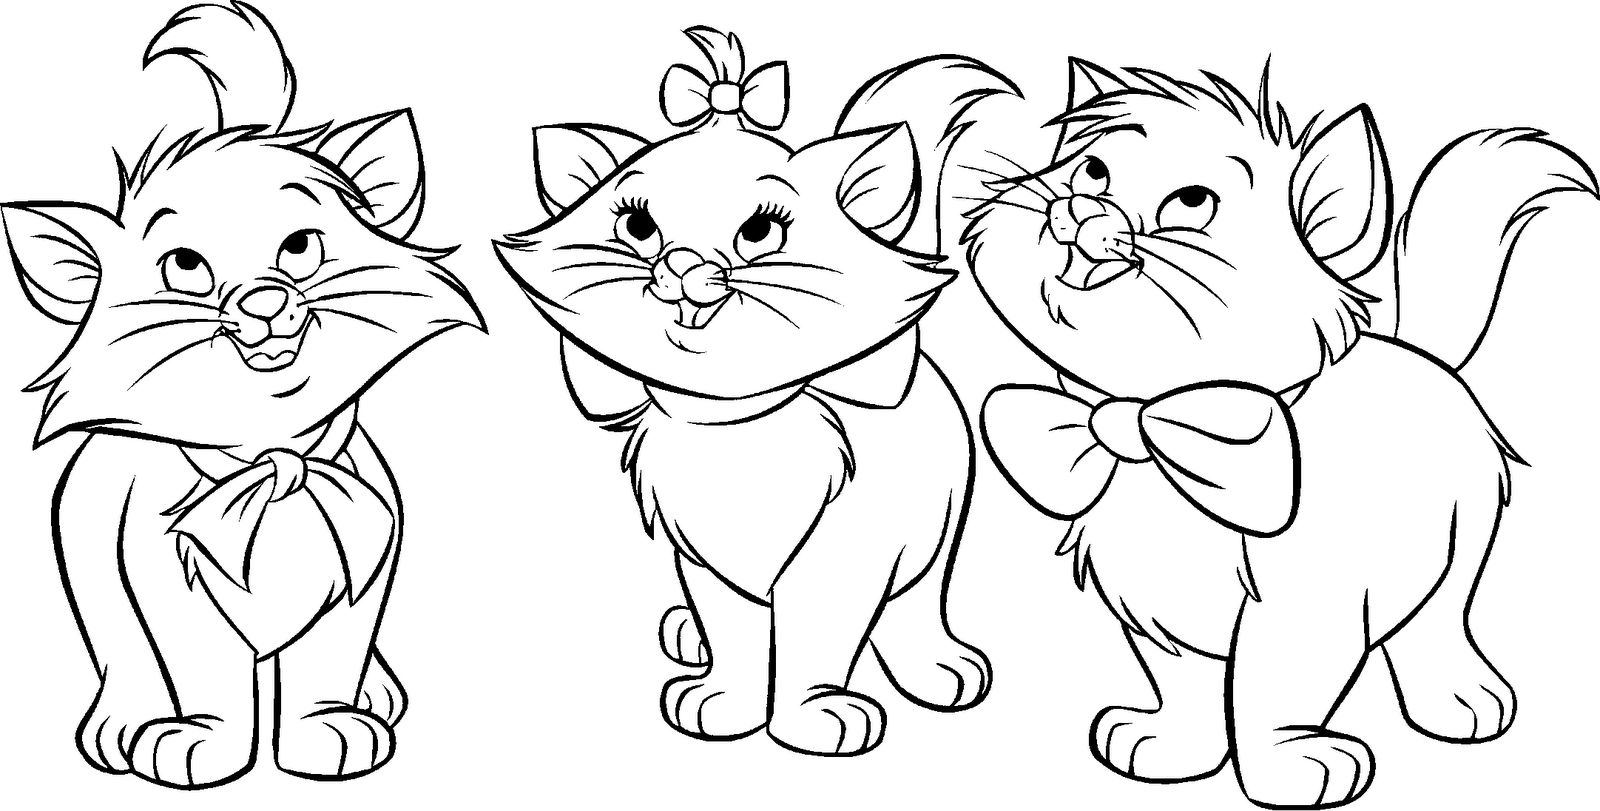 disney aristocats coloring pages - photo#12